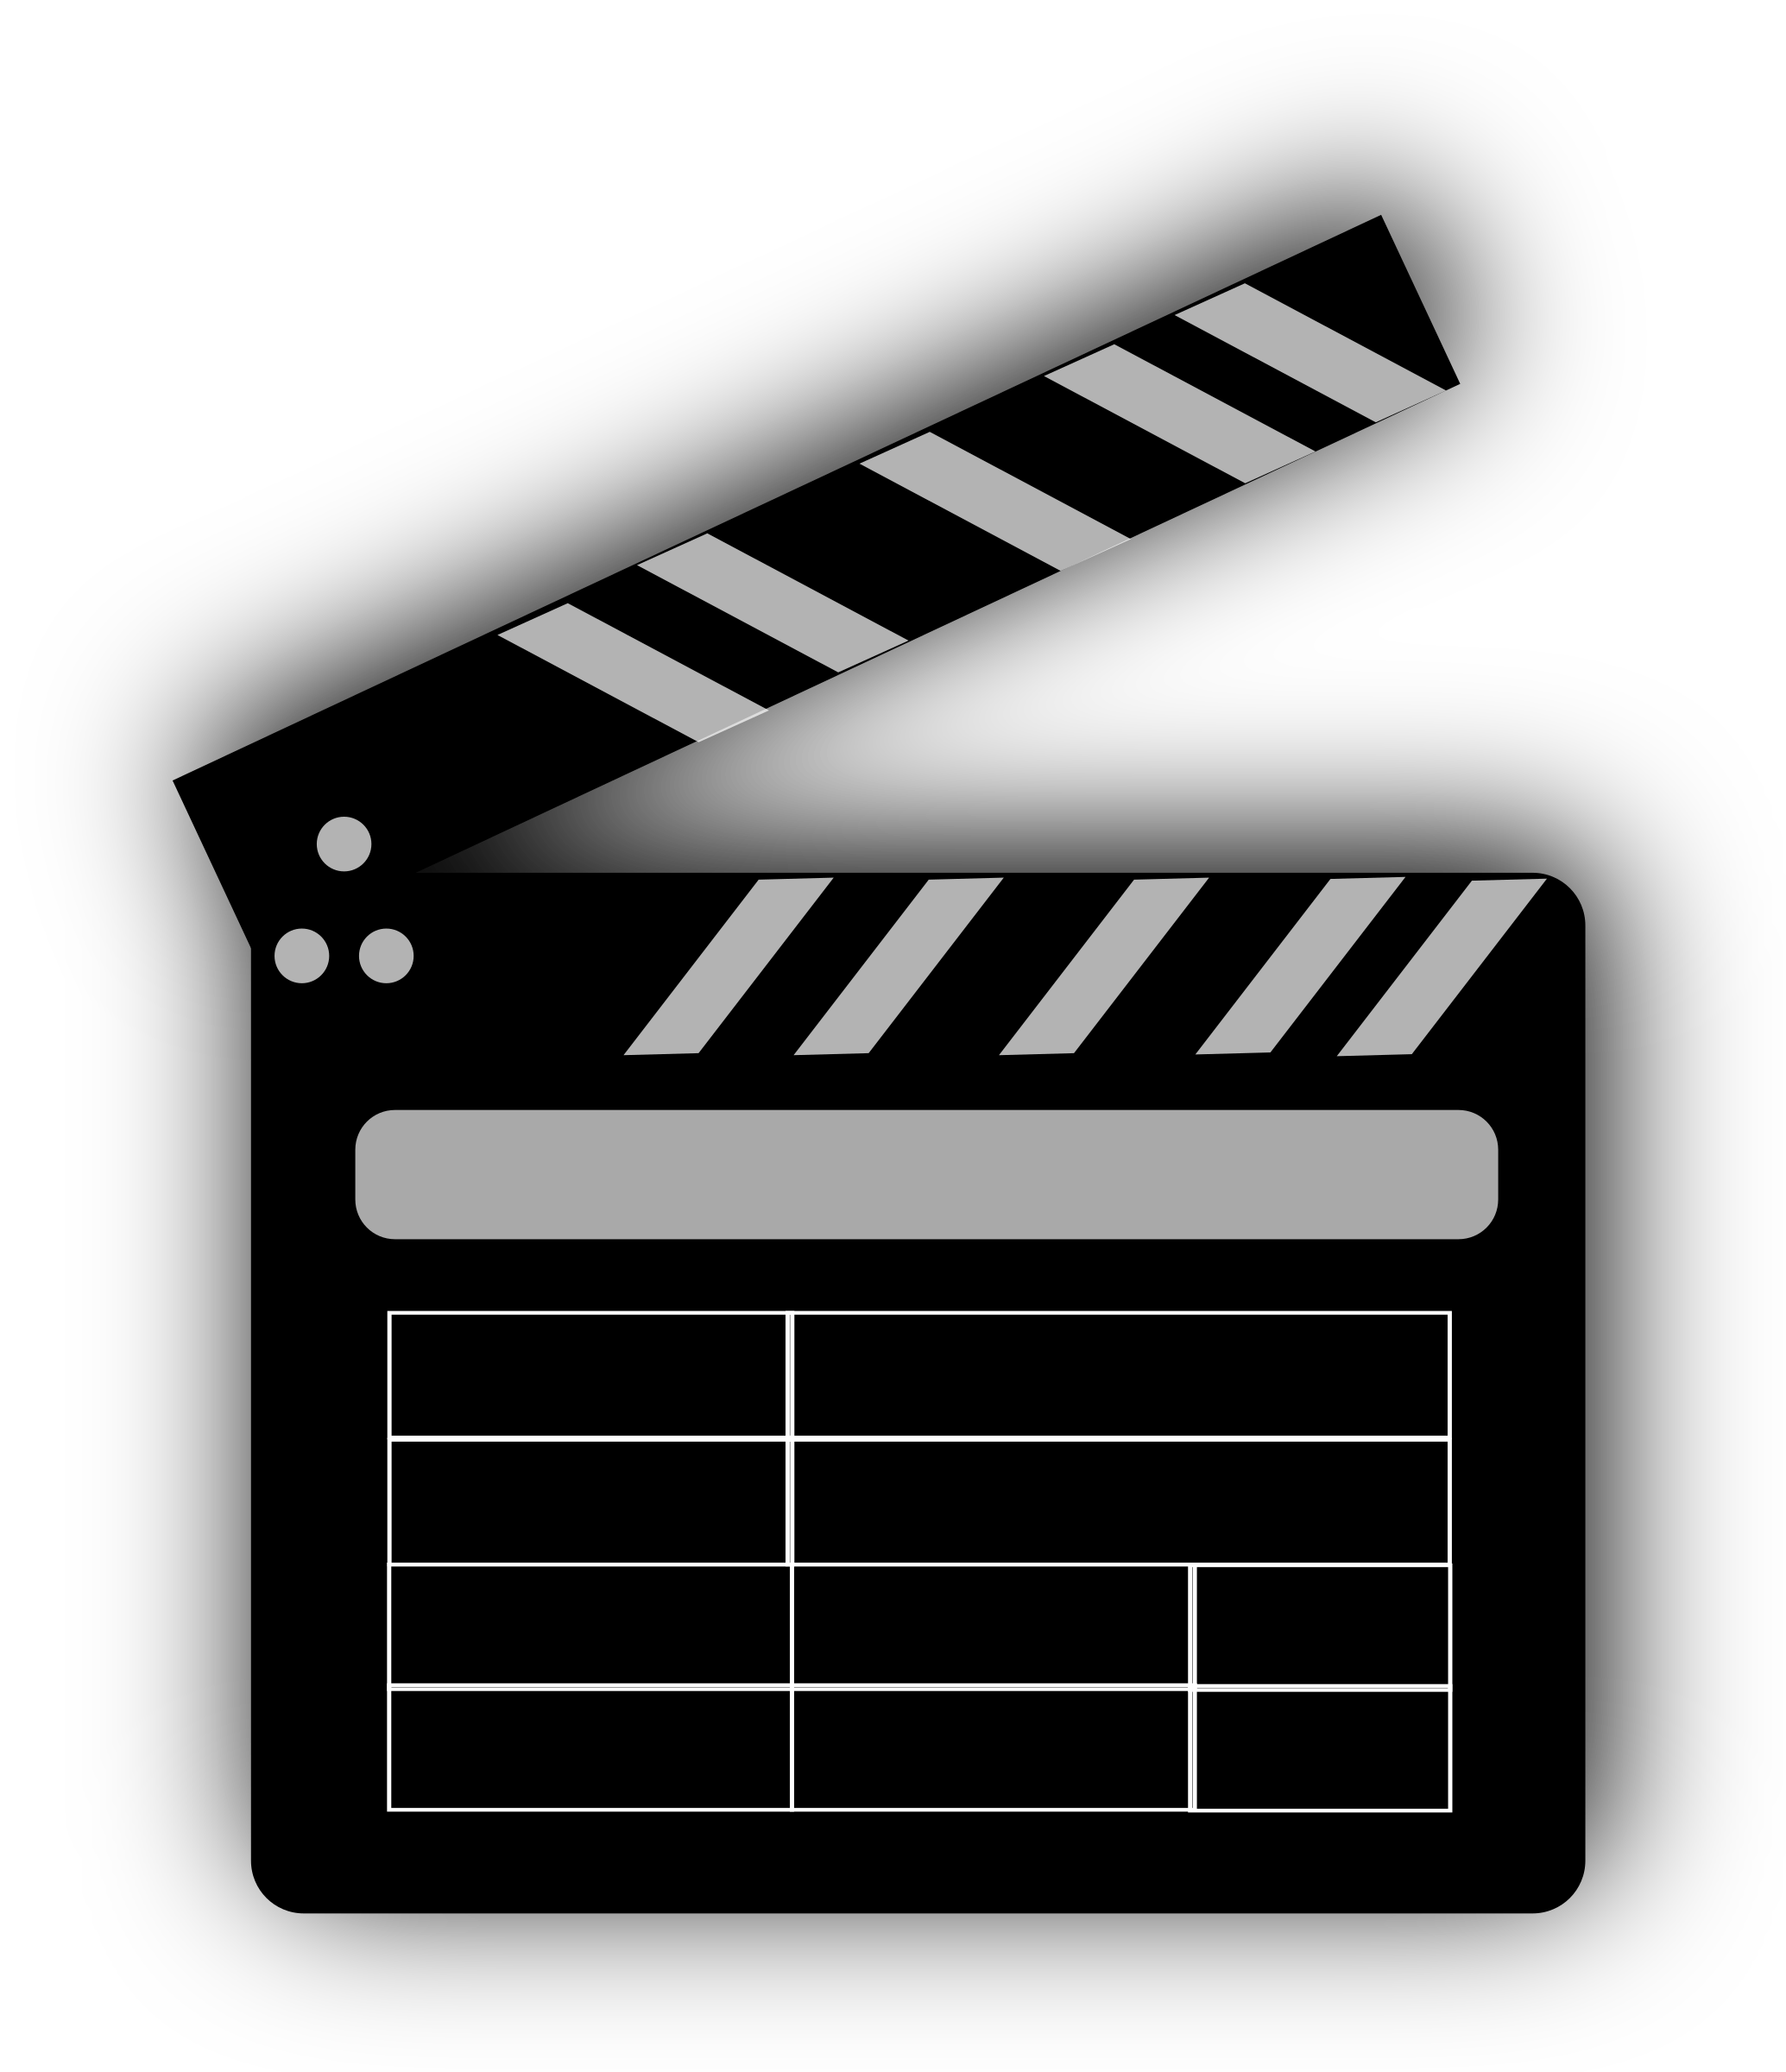 picture transparent library Movie clapper big image. Movies clipart board